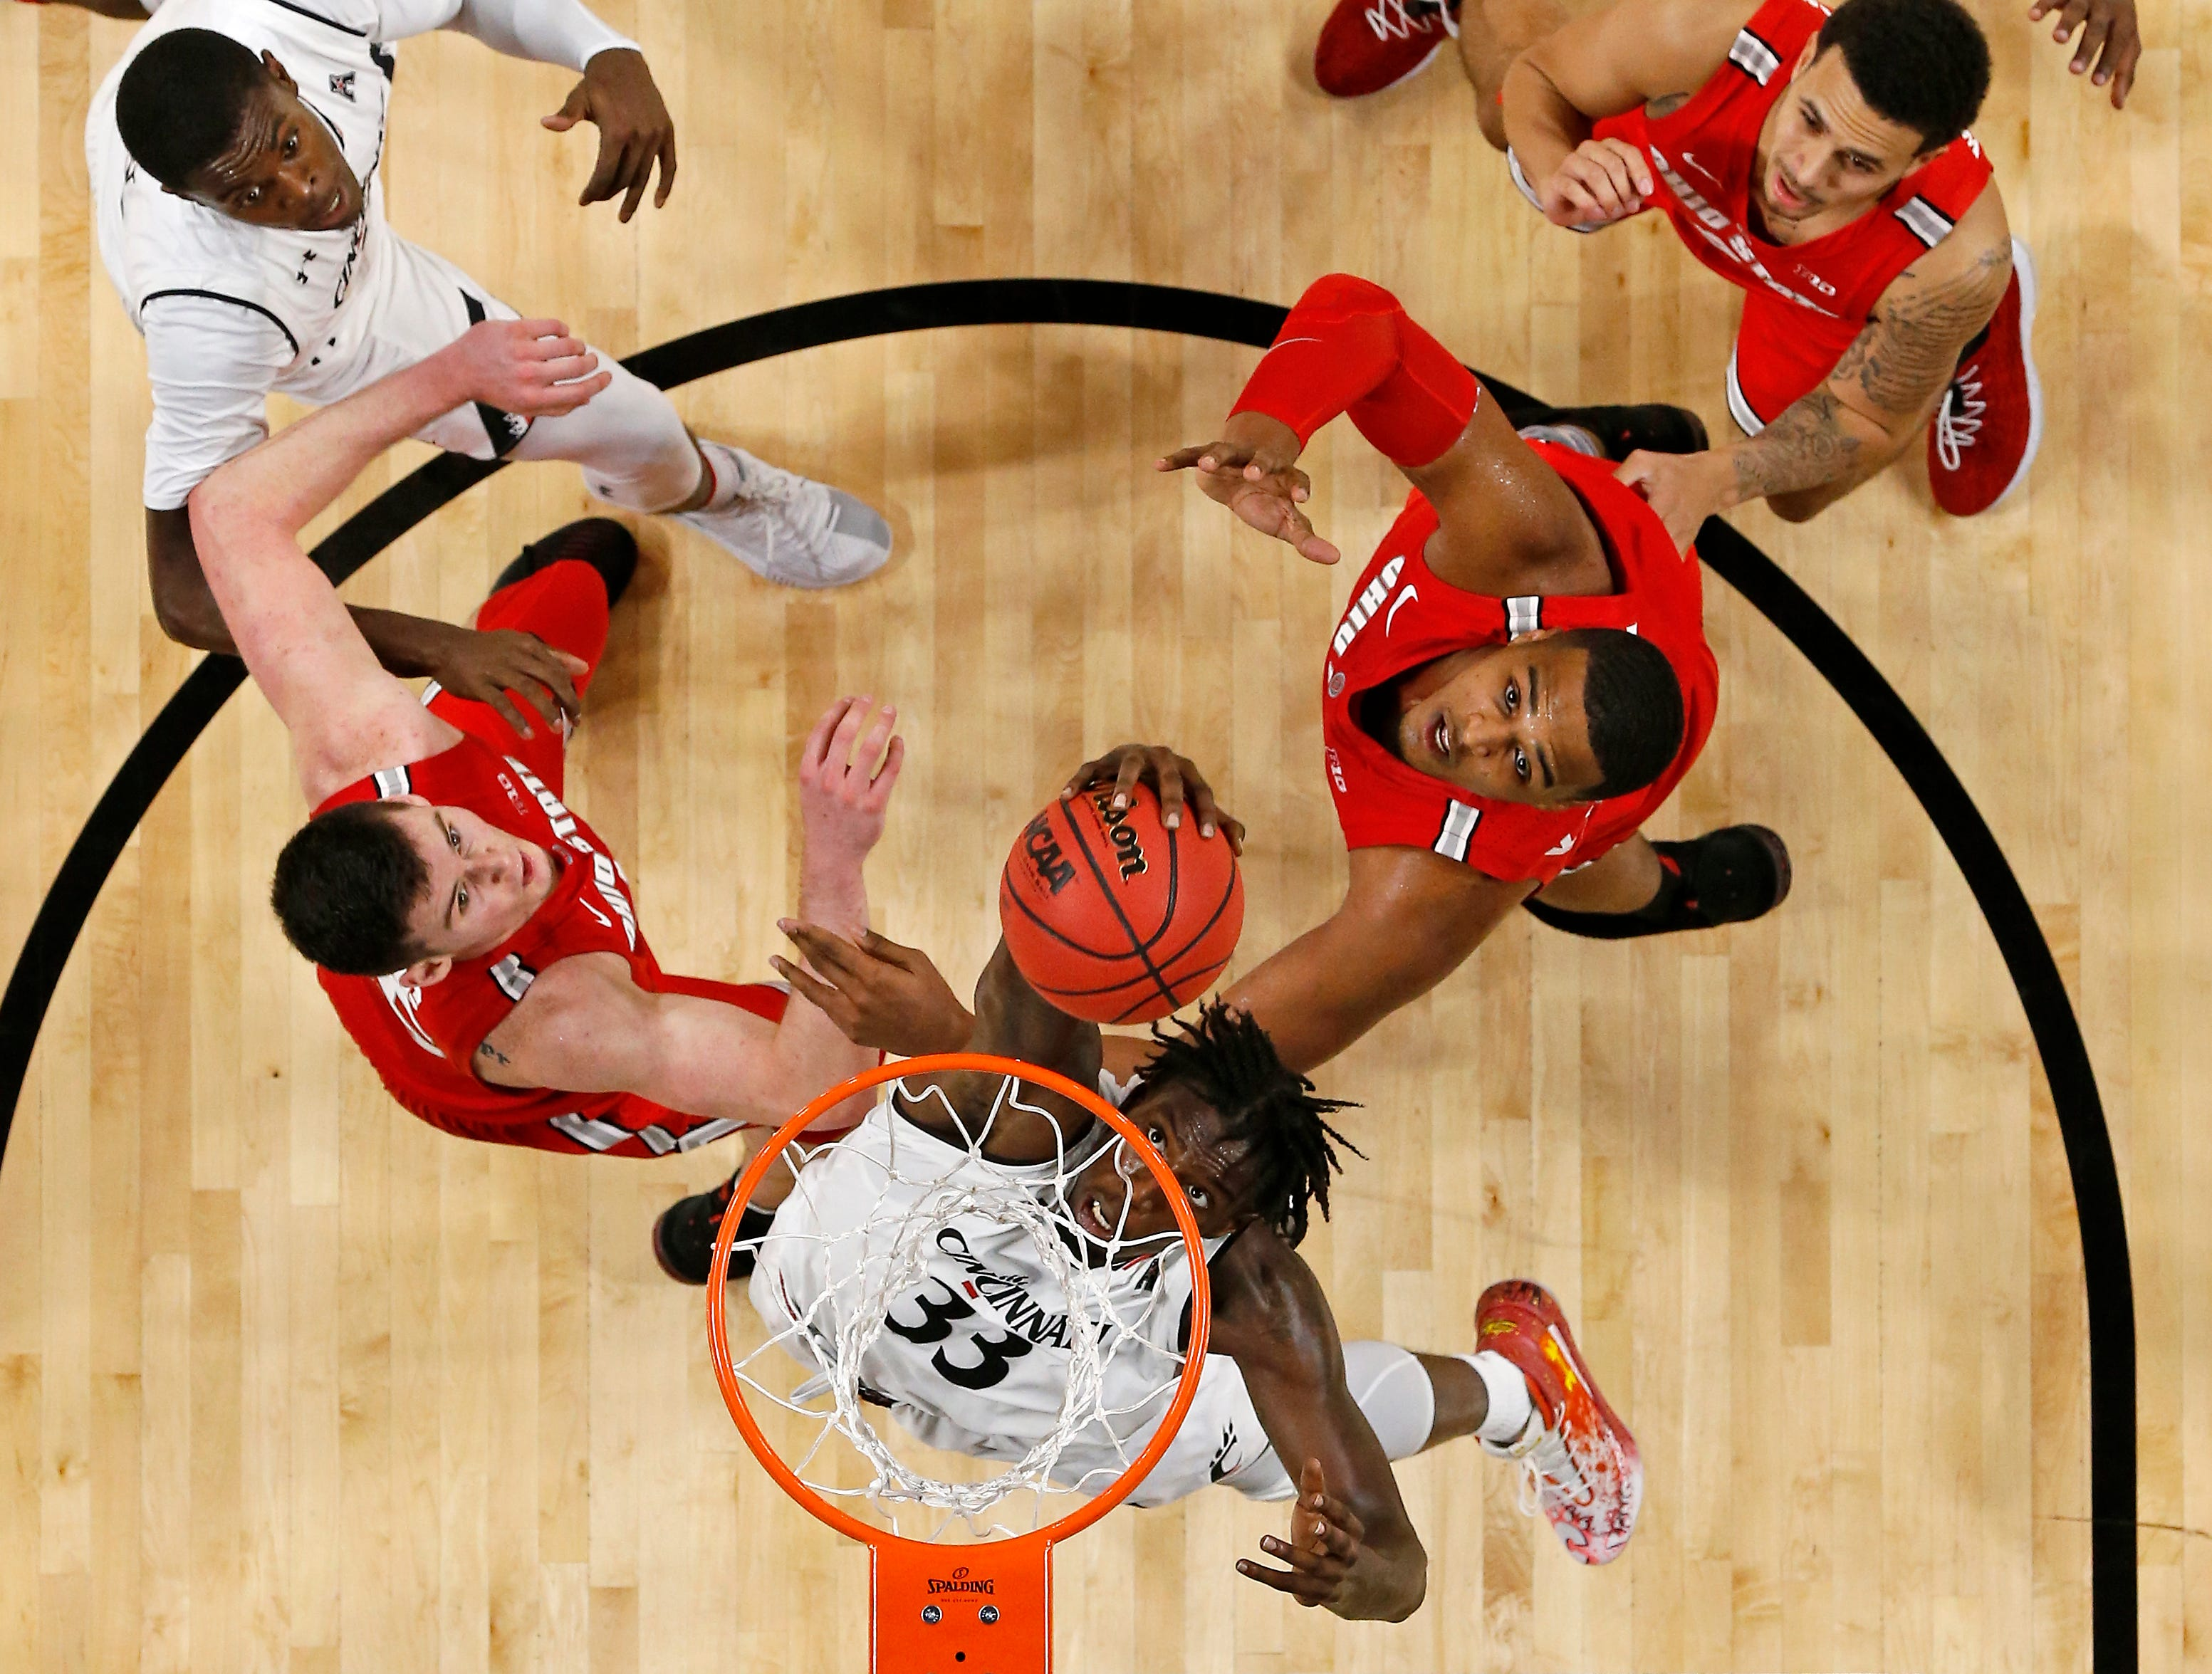 Cincinnati Bearcats center Nysier Brooks (33) puts up a shot in the second half of the NCAA basketball game between the Cincinnati Bearcats and the Ohio State Buckeyes at Fifth Third Arena in Cincinnati on Wednesday, Nov. 7, 2018. The Bearcats opened the season 0-1 with a 64-56 loss the Ohio State.